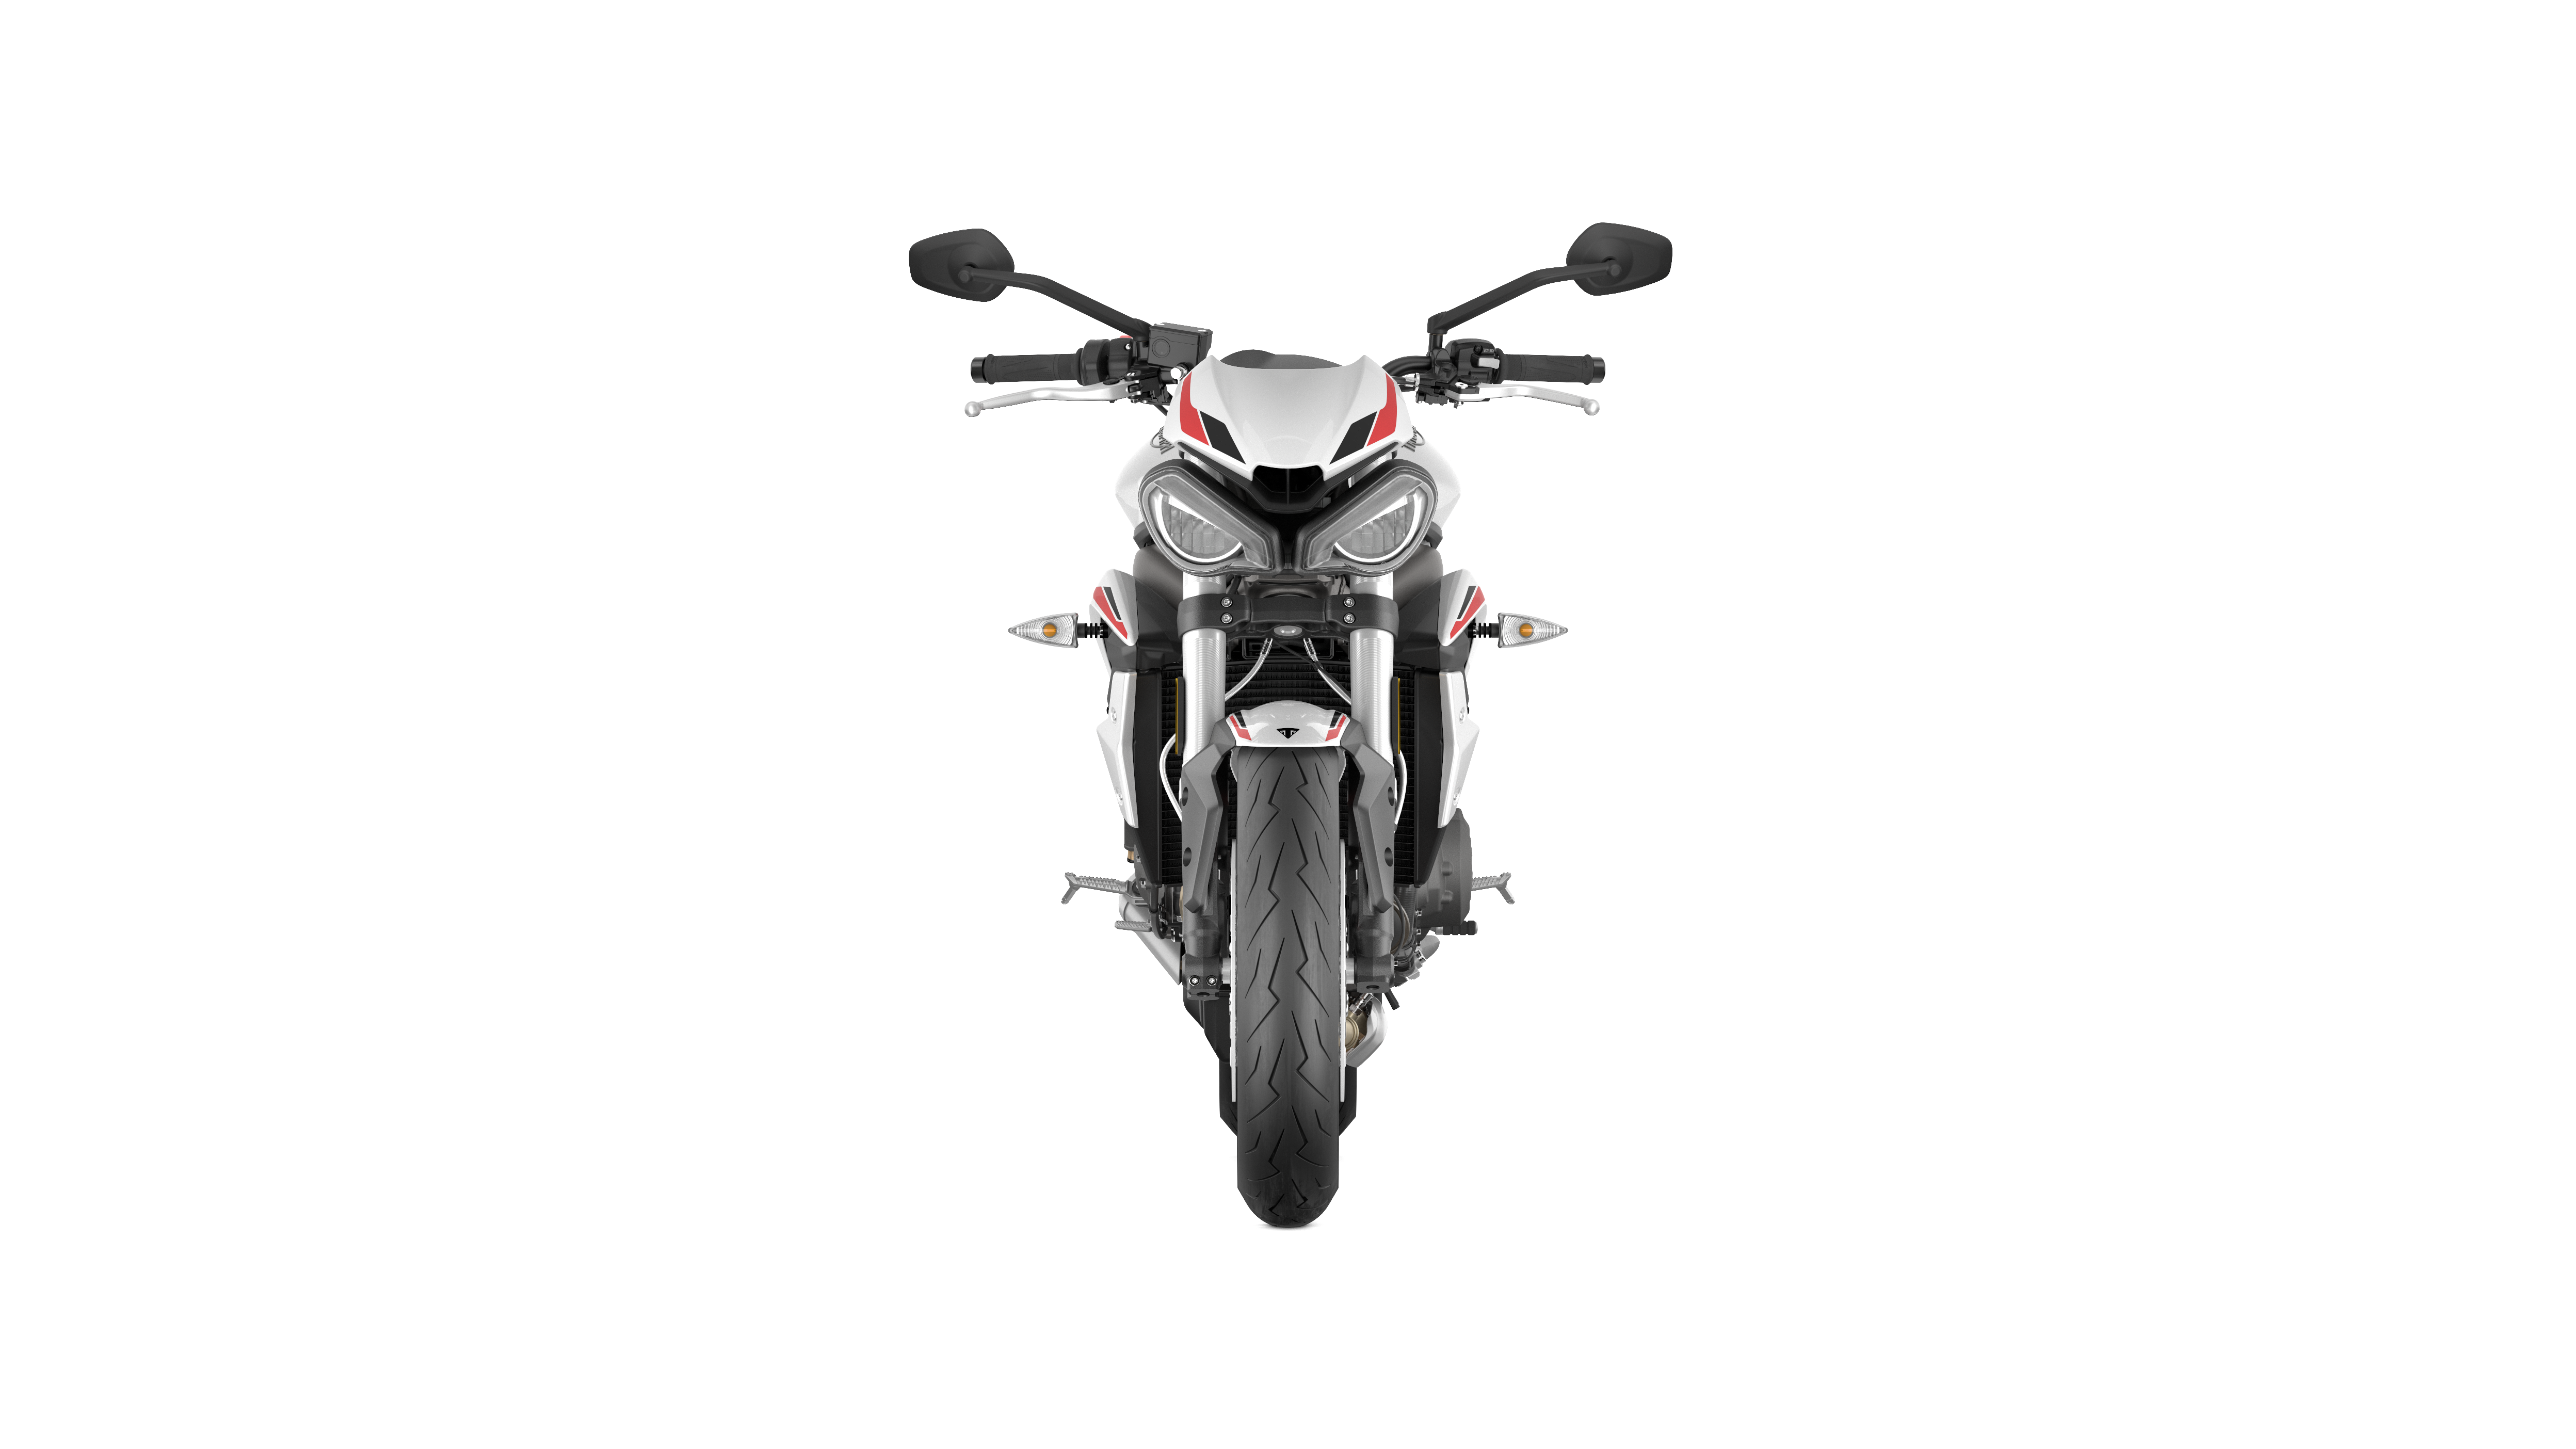 street-triple-s-my20-white-front